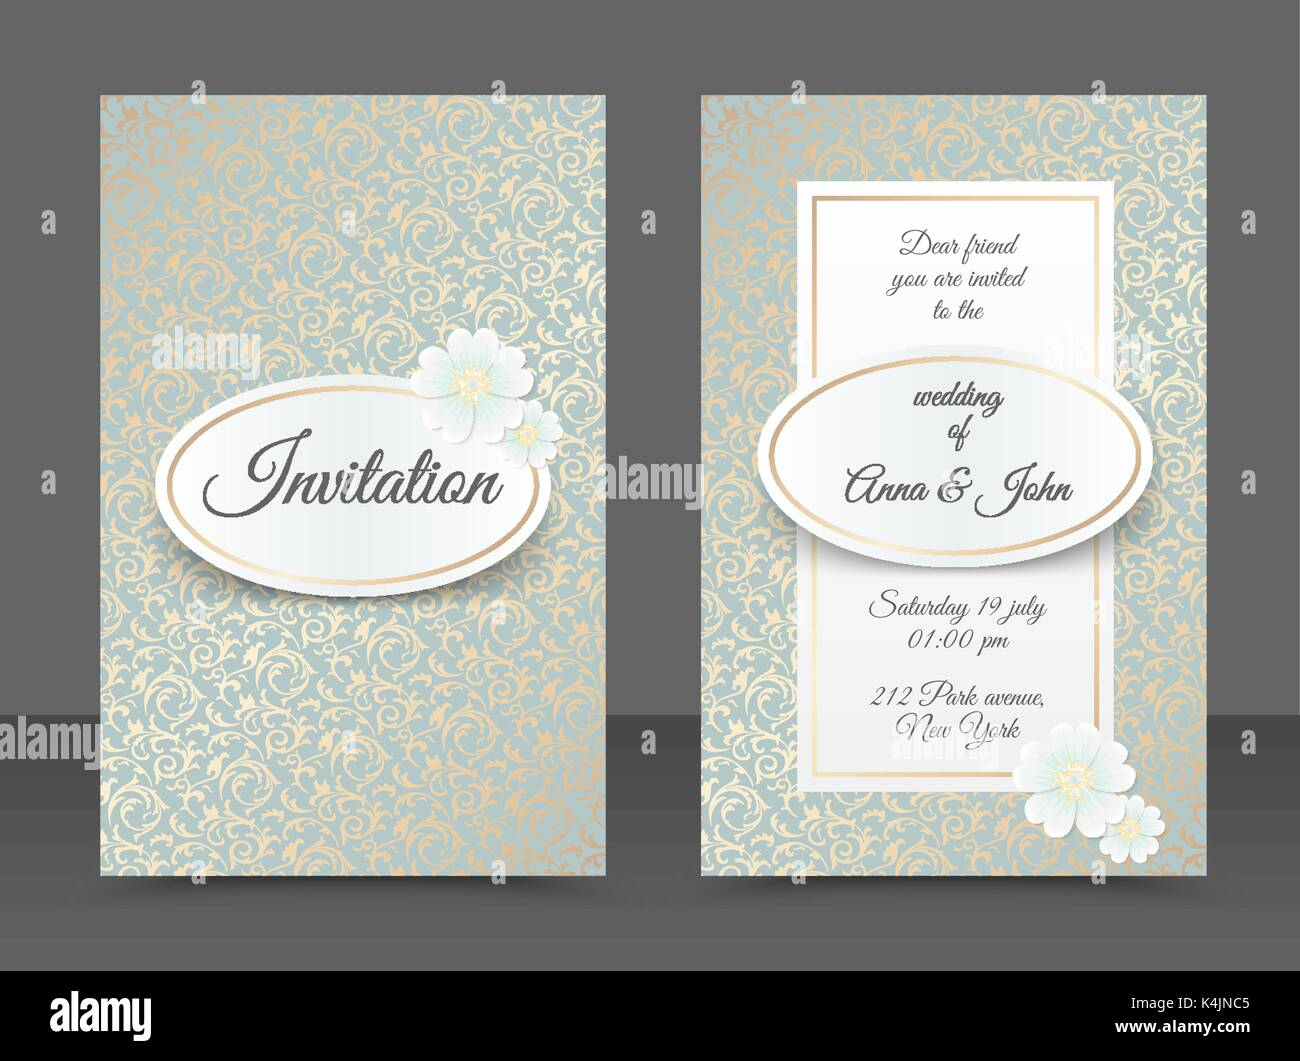 Vintage wedding invitation templates. Cover design with golden ...